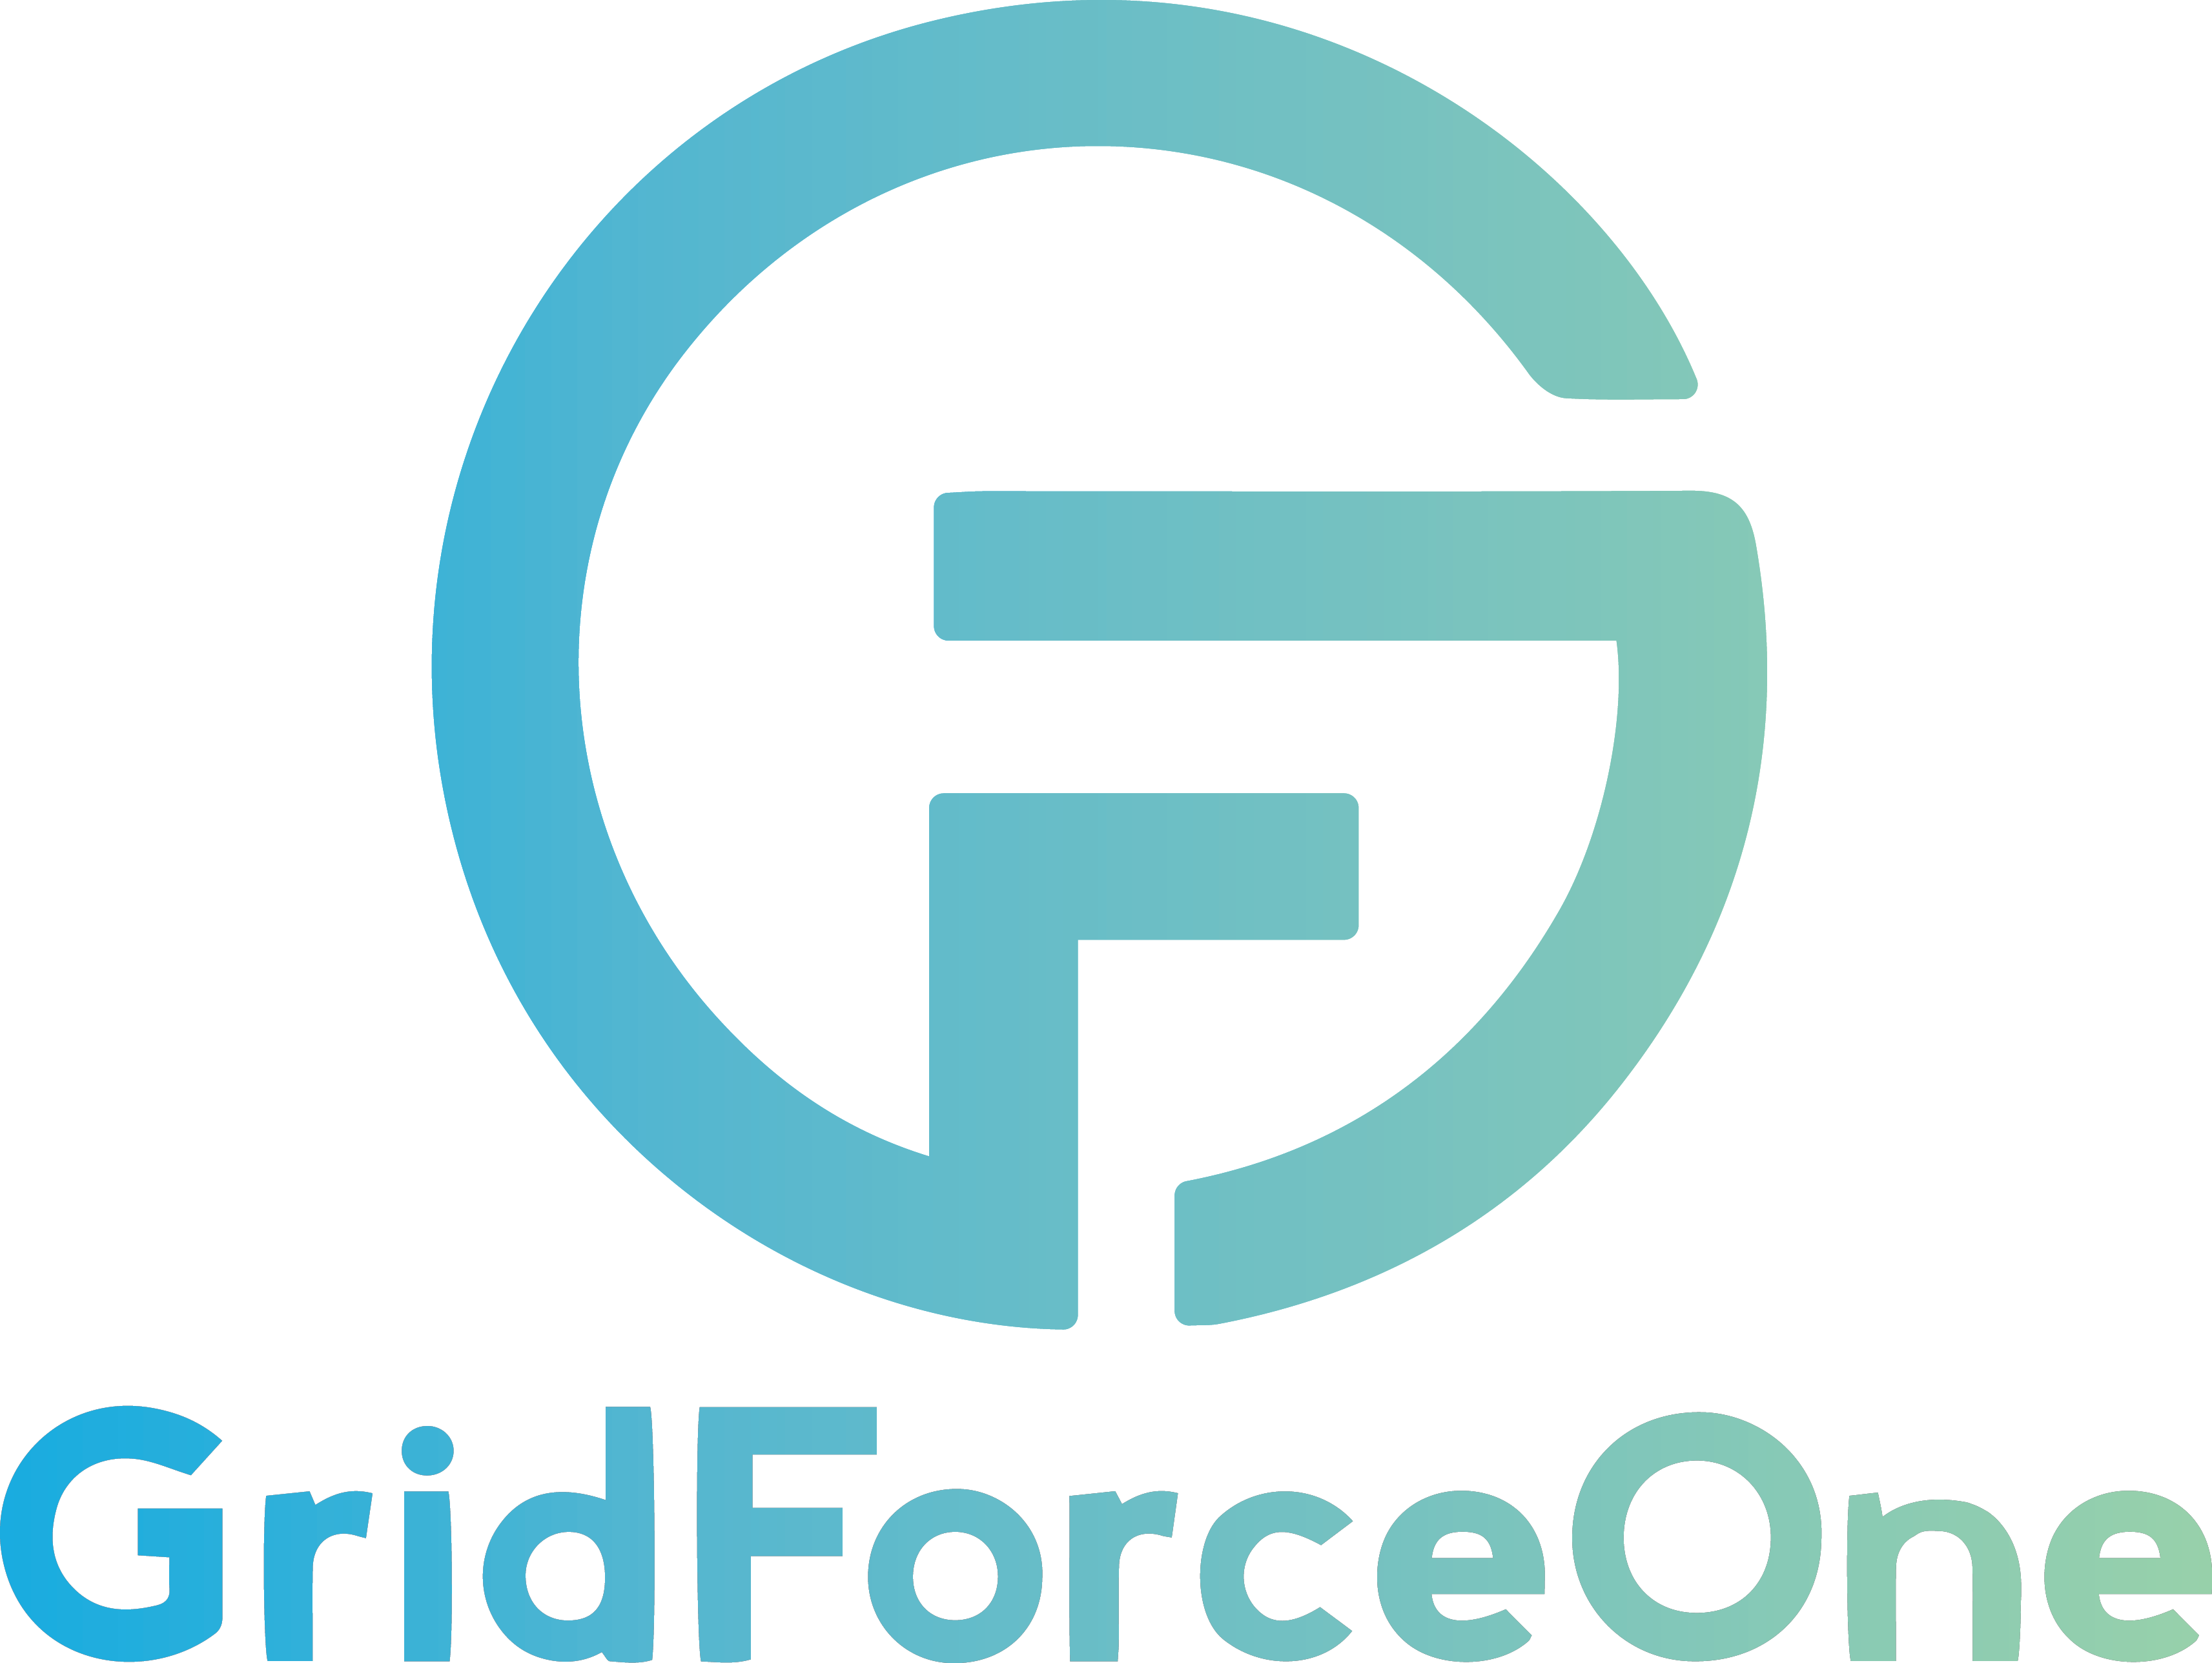 GridForceOne